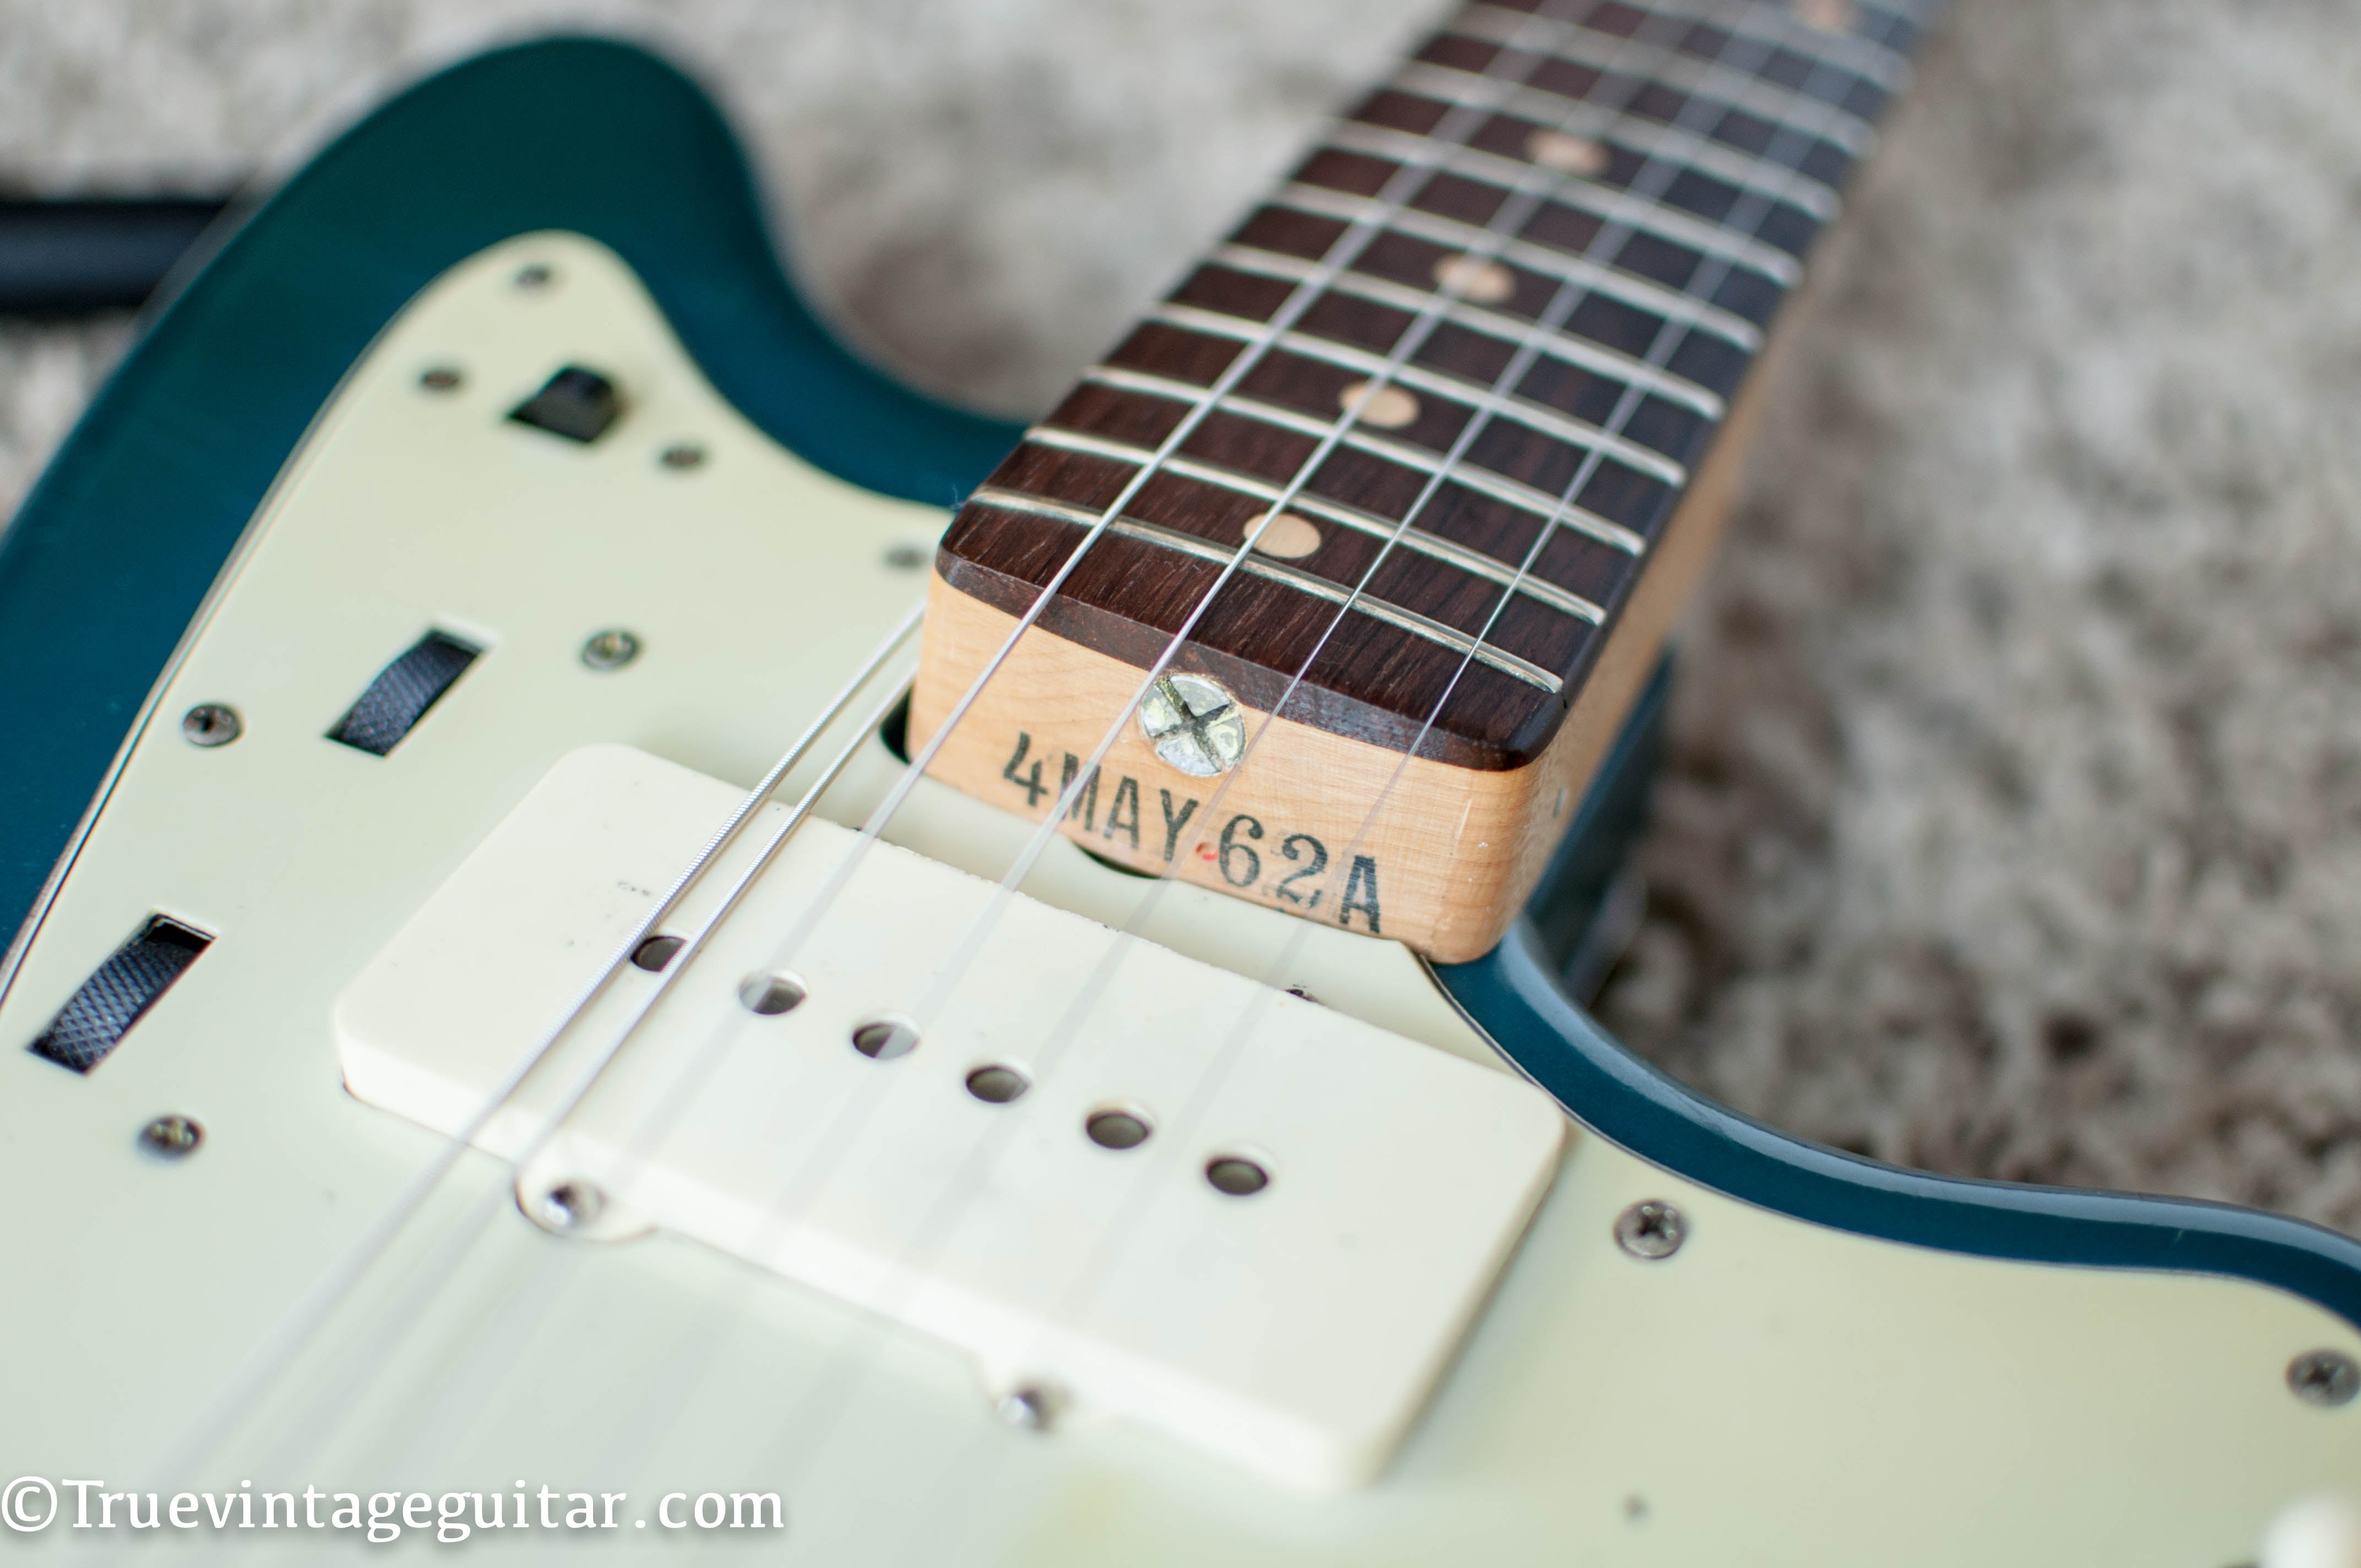 Fender guitar neck date stamp